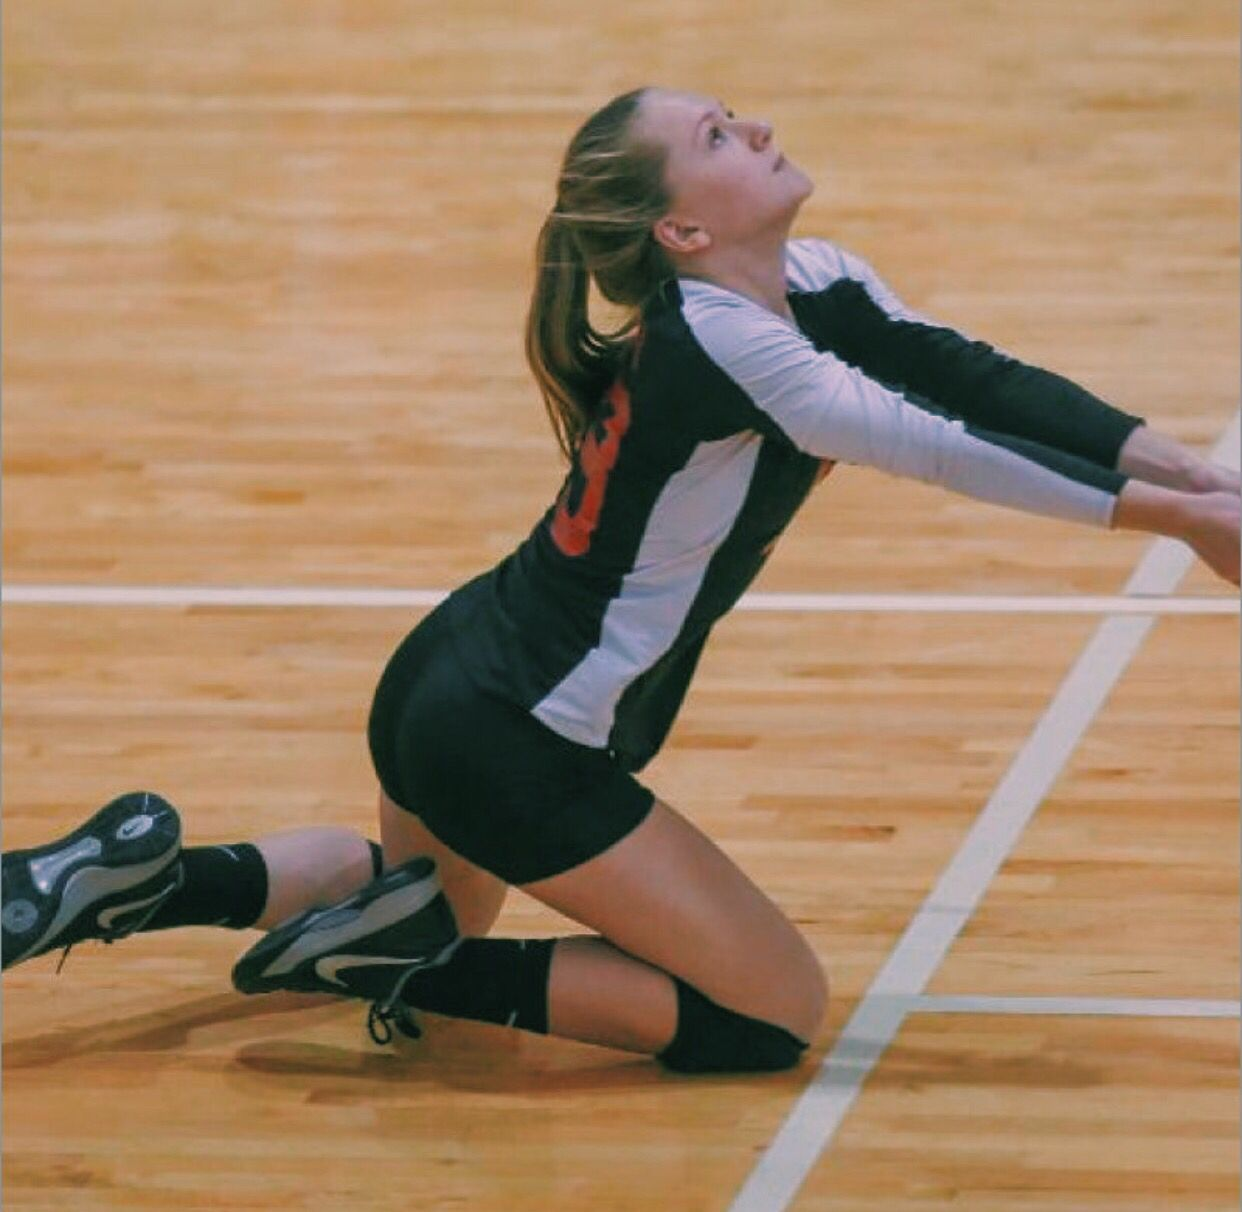 Pin By Najlia On Volleyball Volleyball Pictures Volleyball Players Volleyball